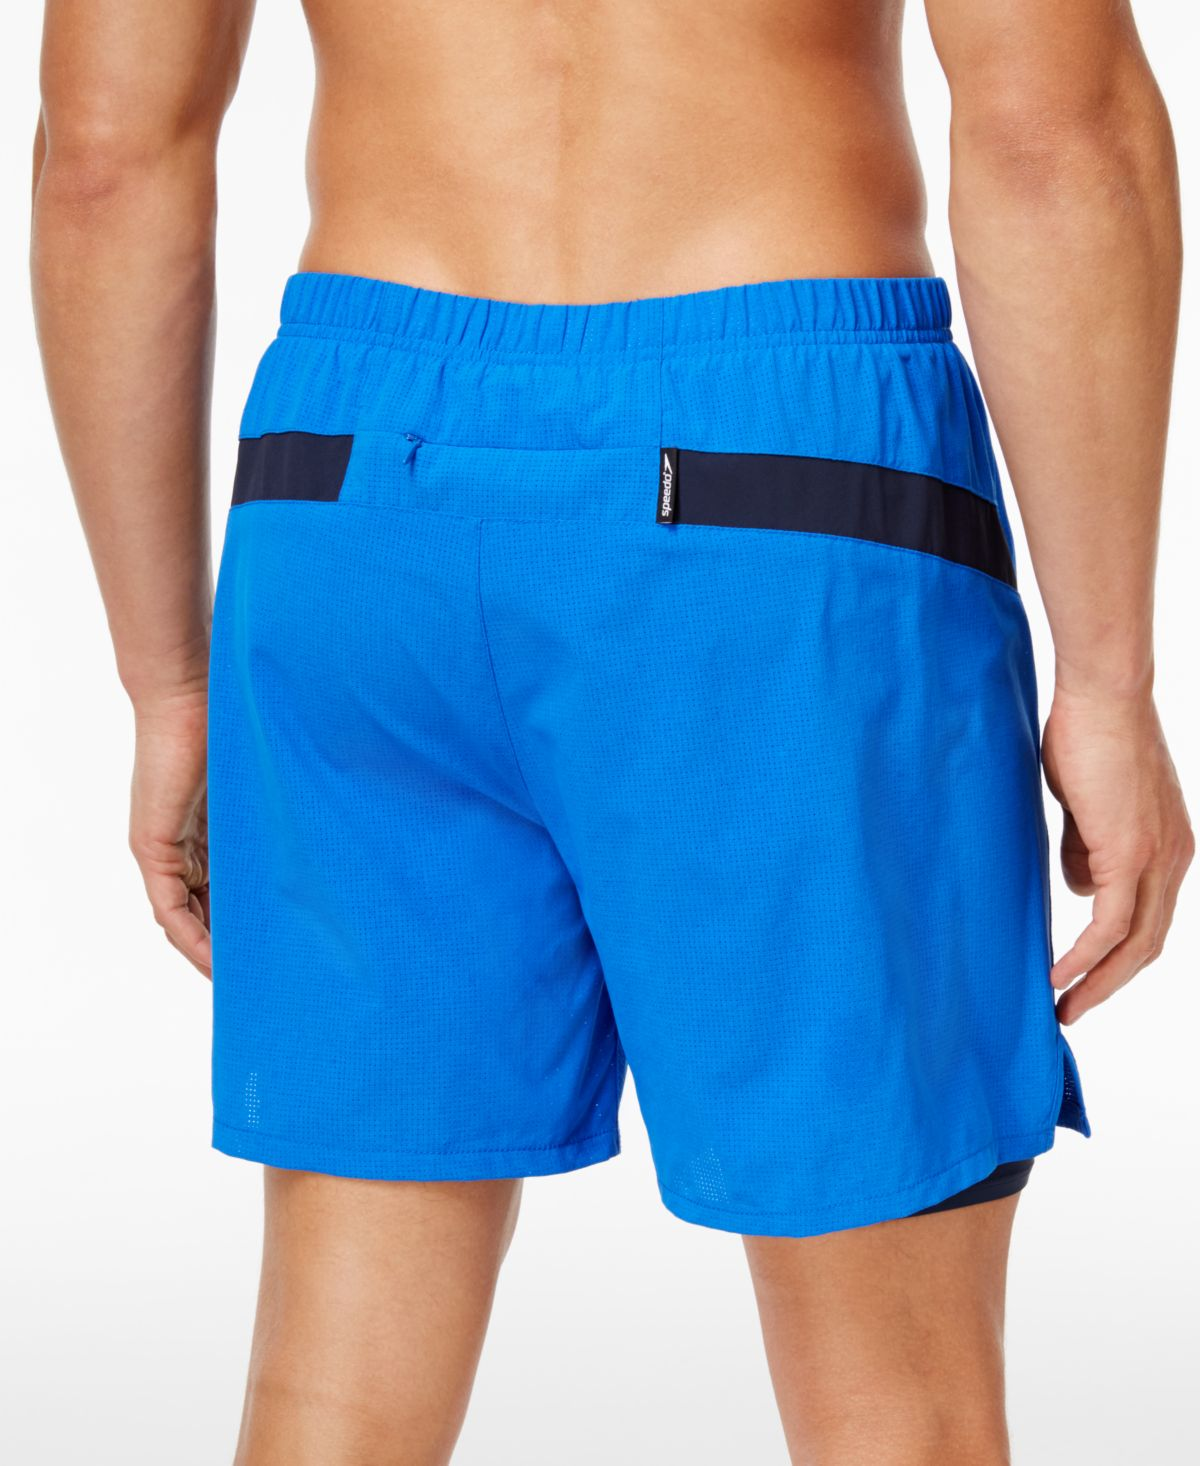 1d2dea1914 speedo men's compression jammer swim trunks - Walmart.com